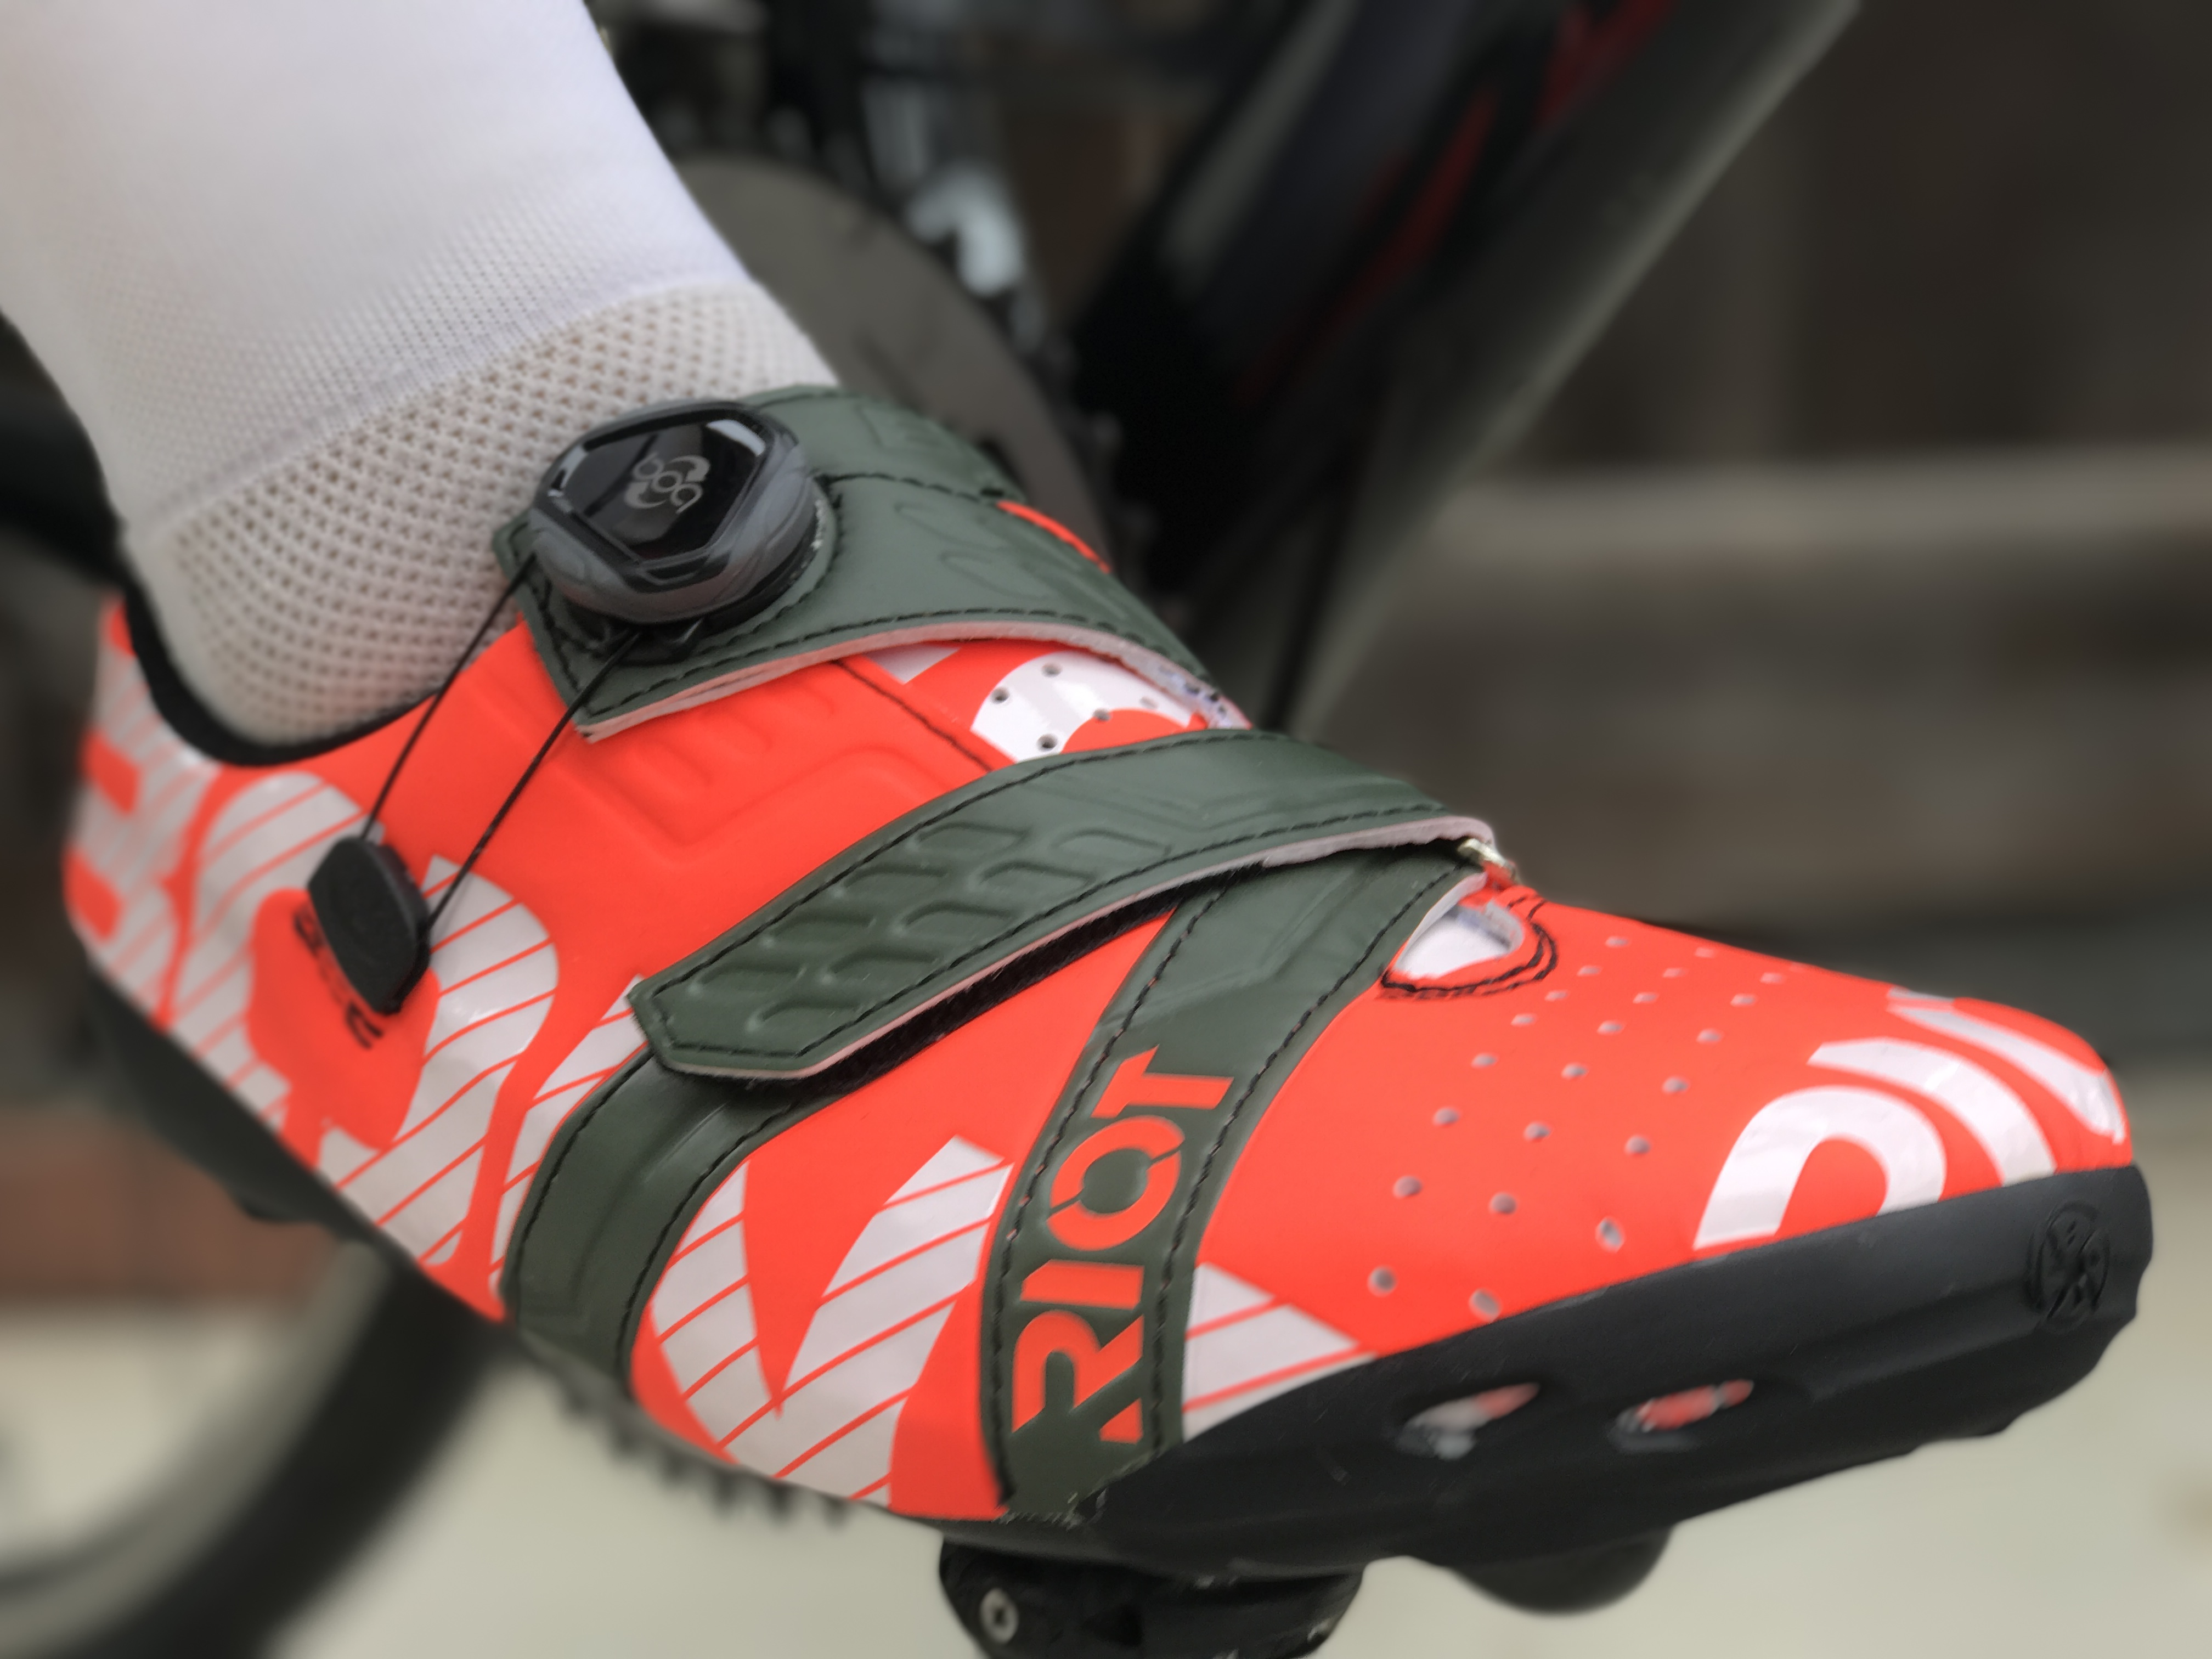 91c6b88958ca The Best Cycling Shoes for Wide Width Feet - The 3 Brands That Will Fit!